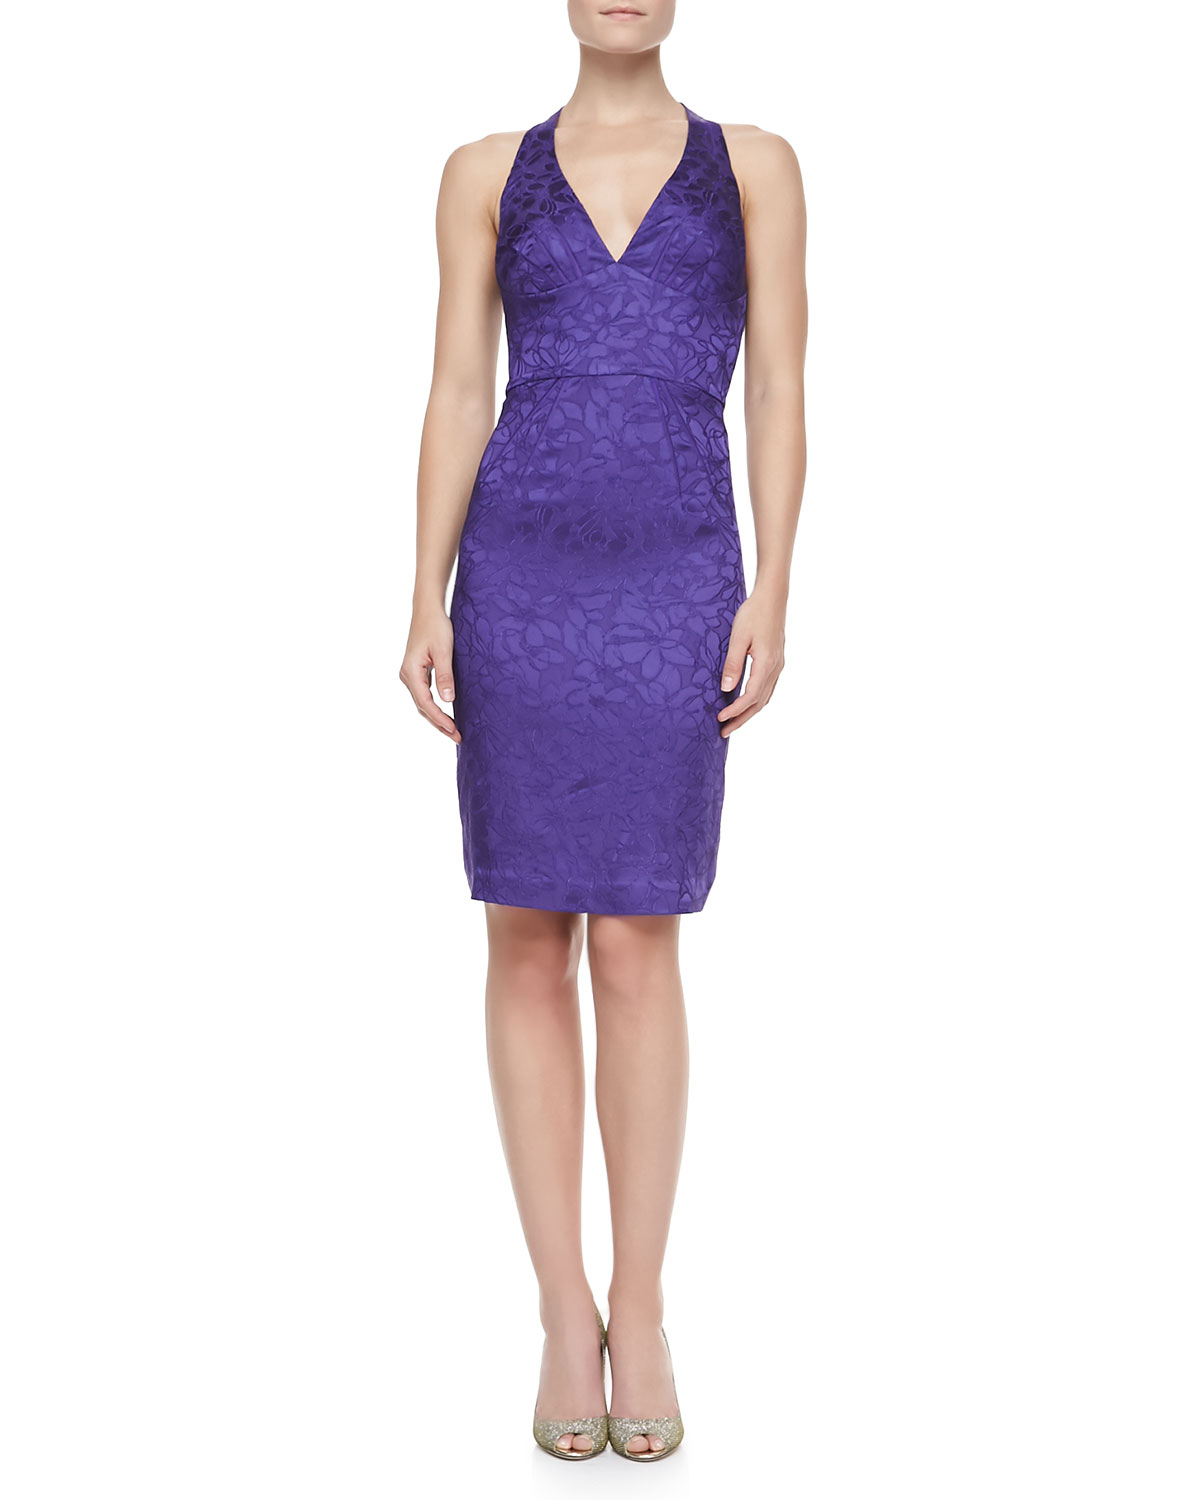 Zac Posen Cocktail Dresses 35